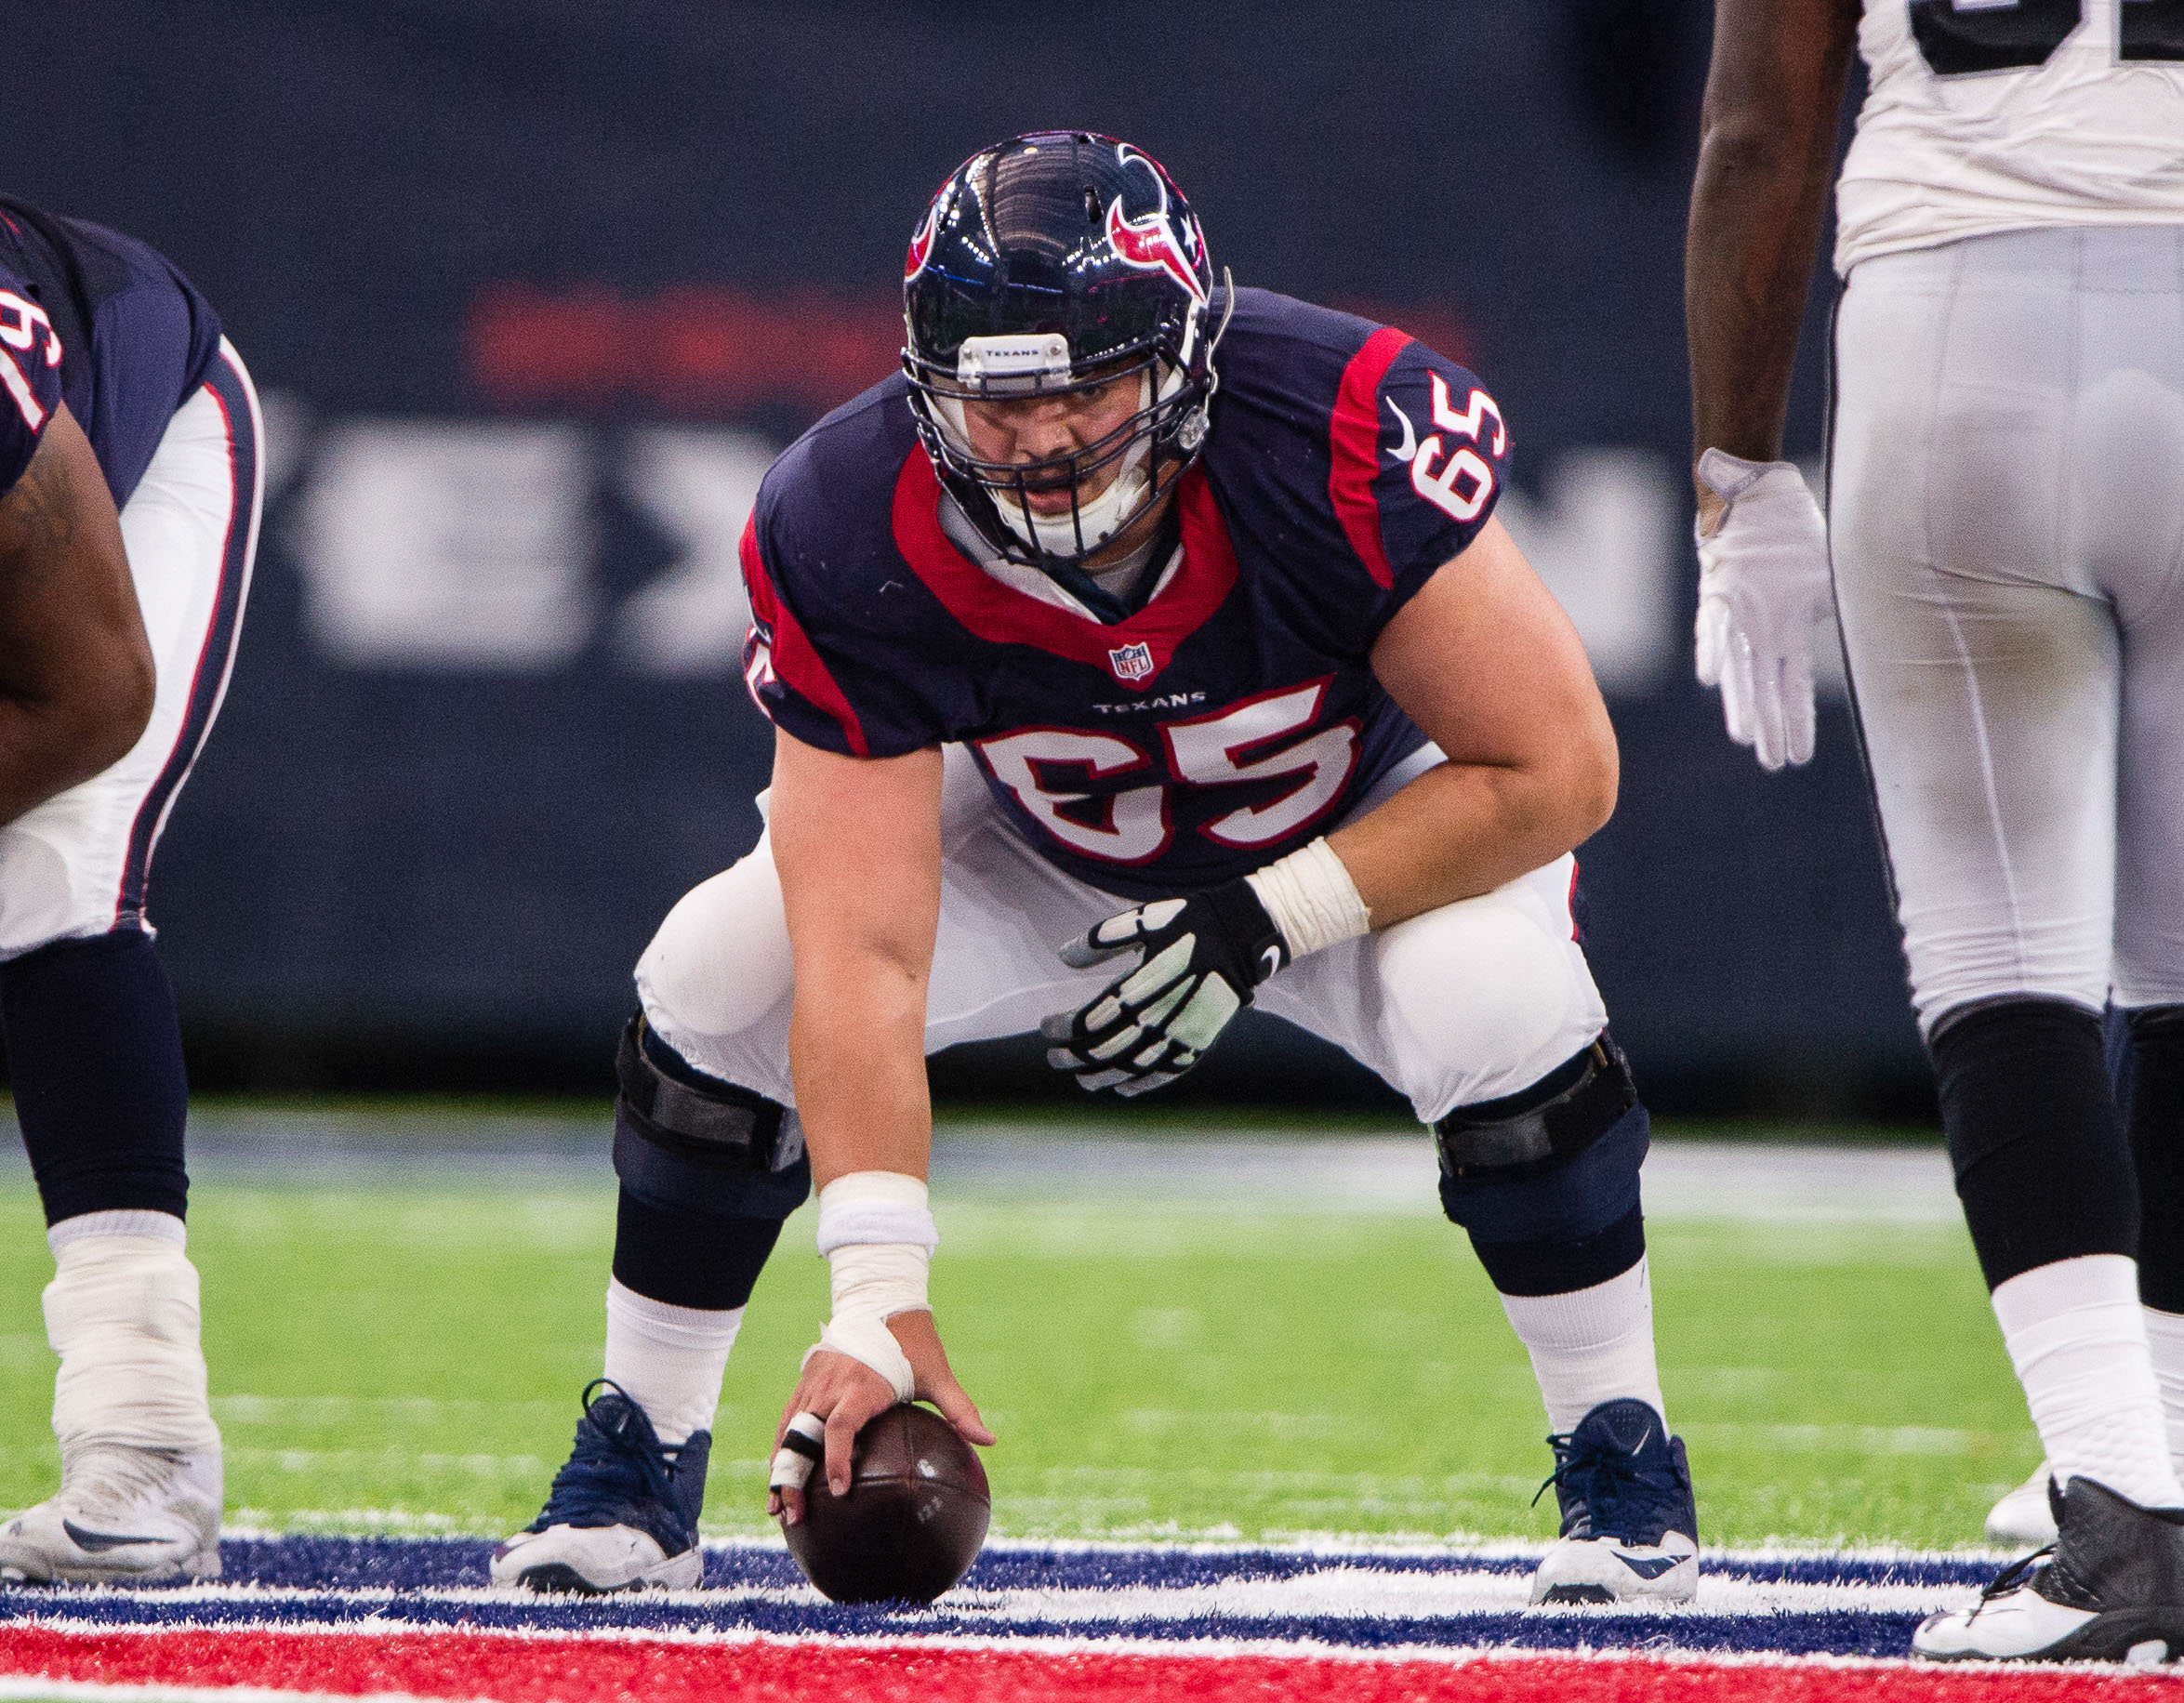 9805048-nfl-afc-wild-card-oakland-raiders-at-houston-texans